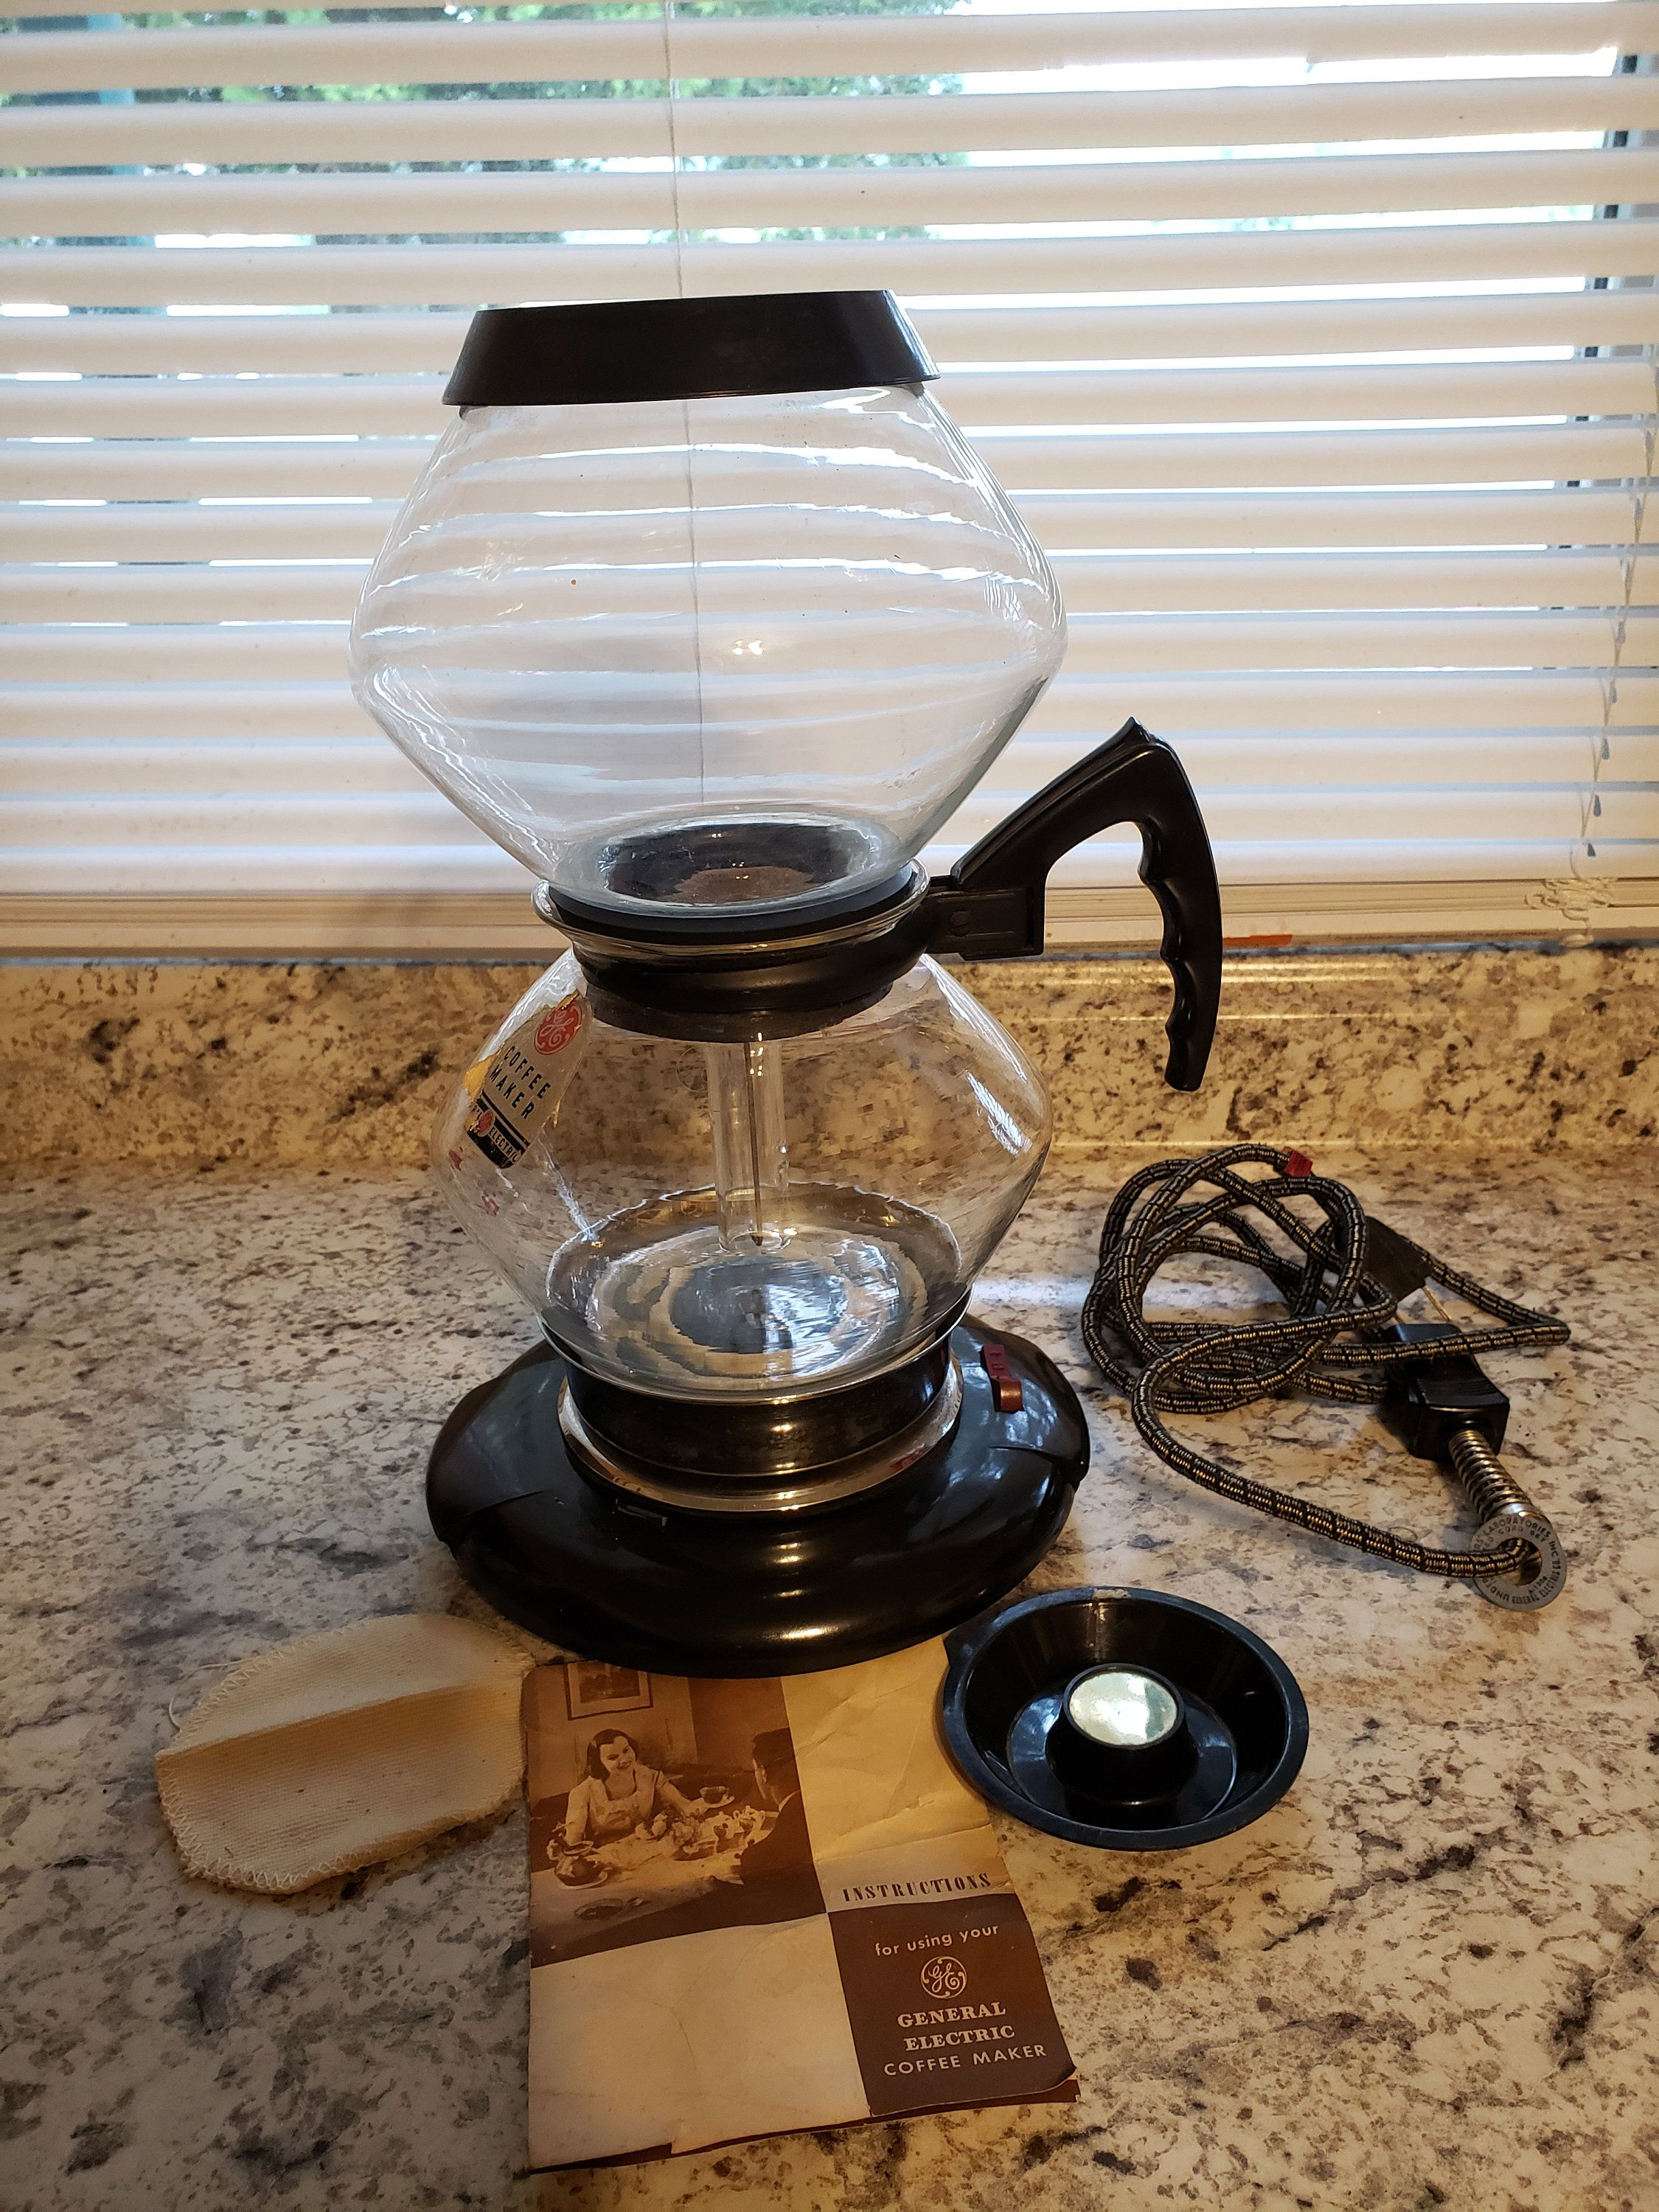 General electric coffee pot with instructions pyrex coffee